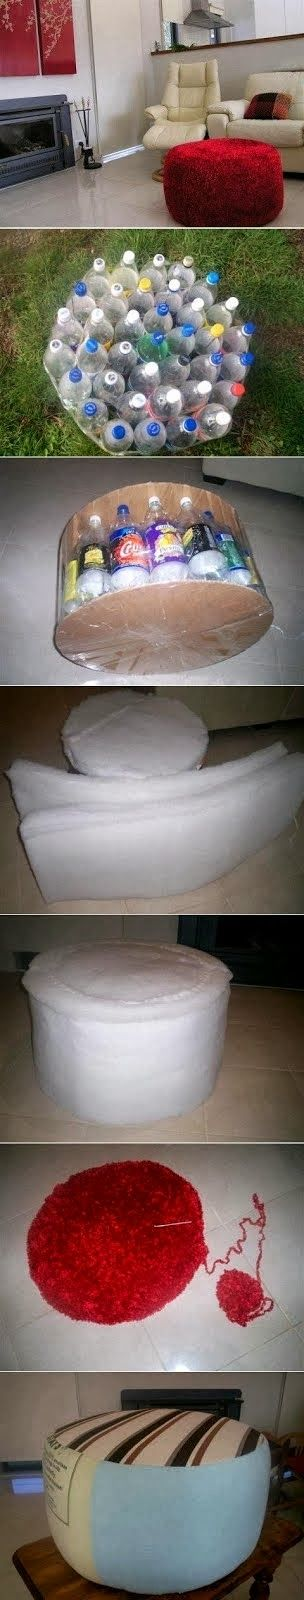 Make an Ottoman By Recycling Plastic Bottle